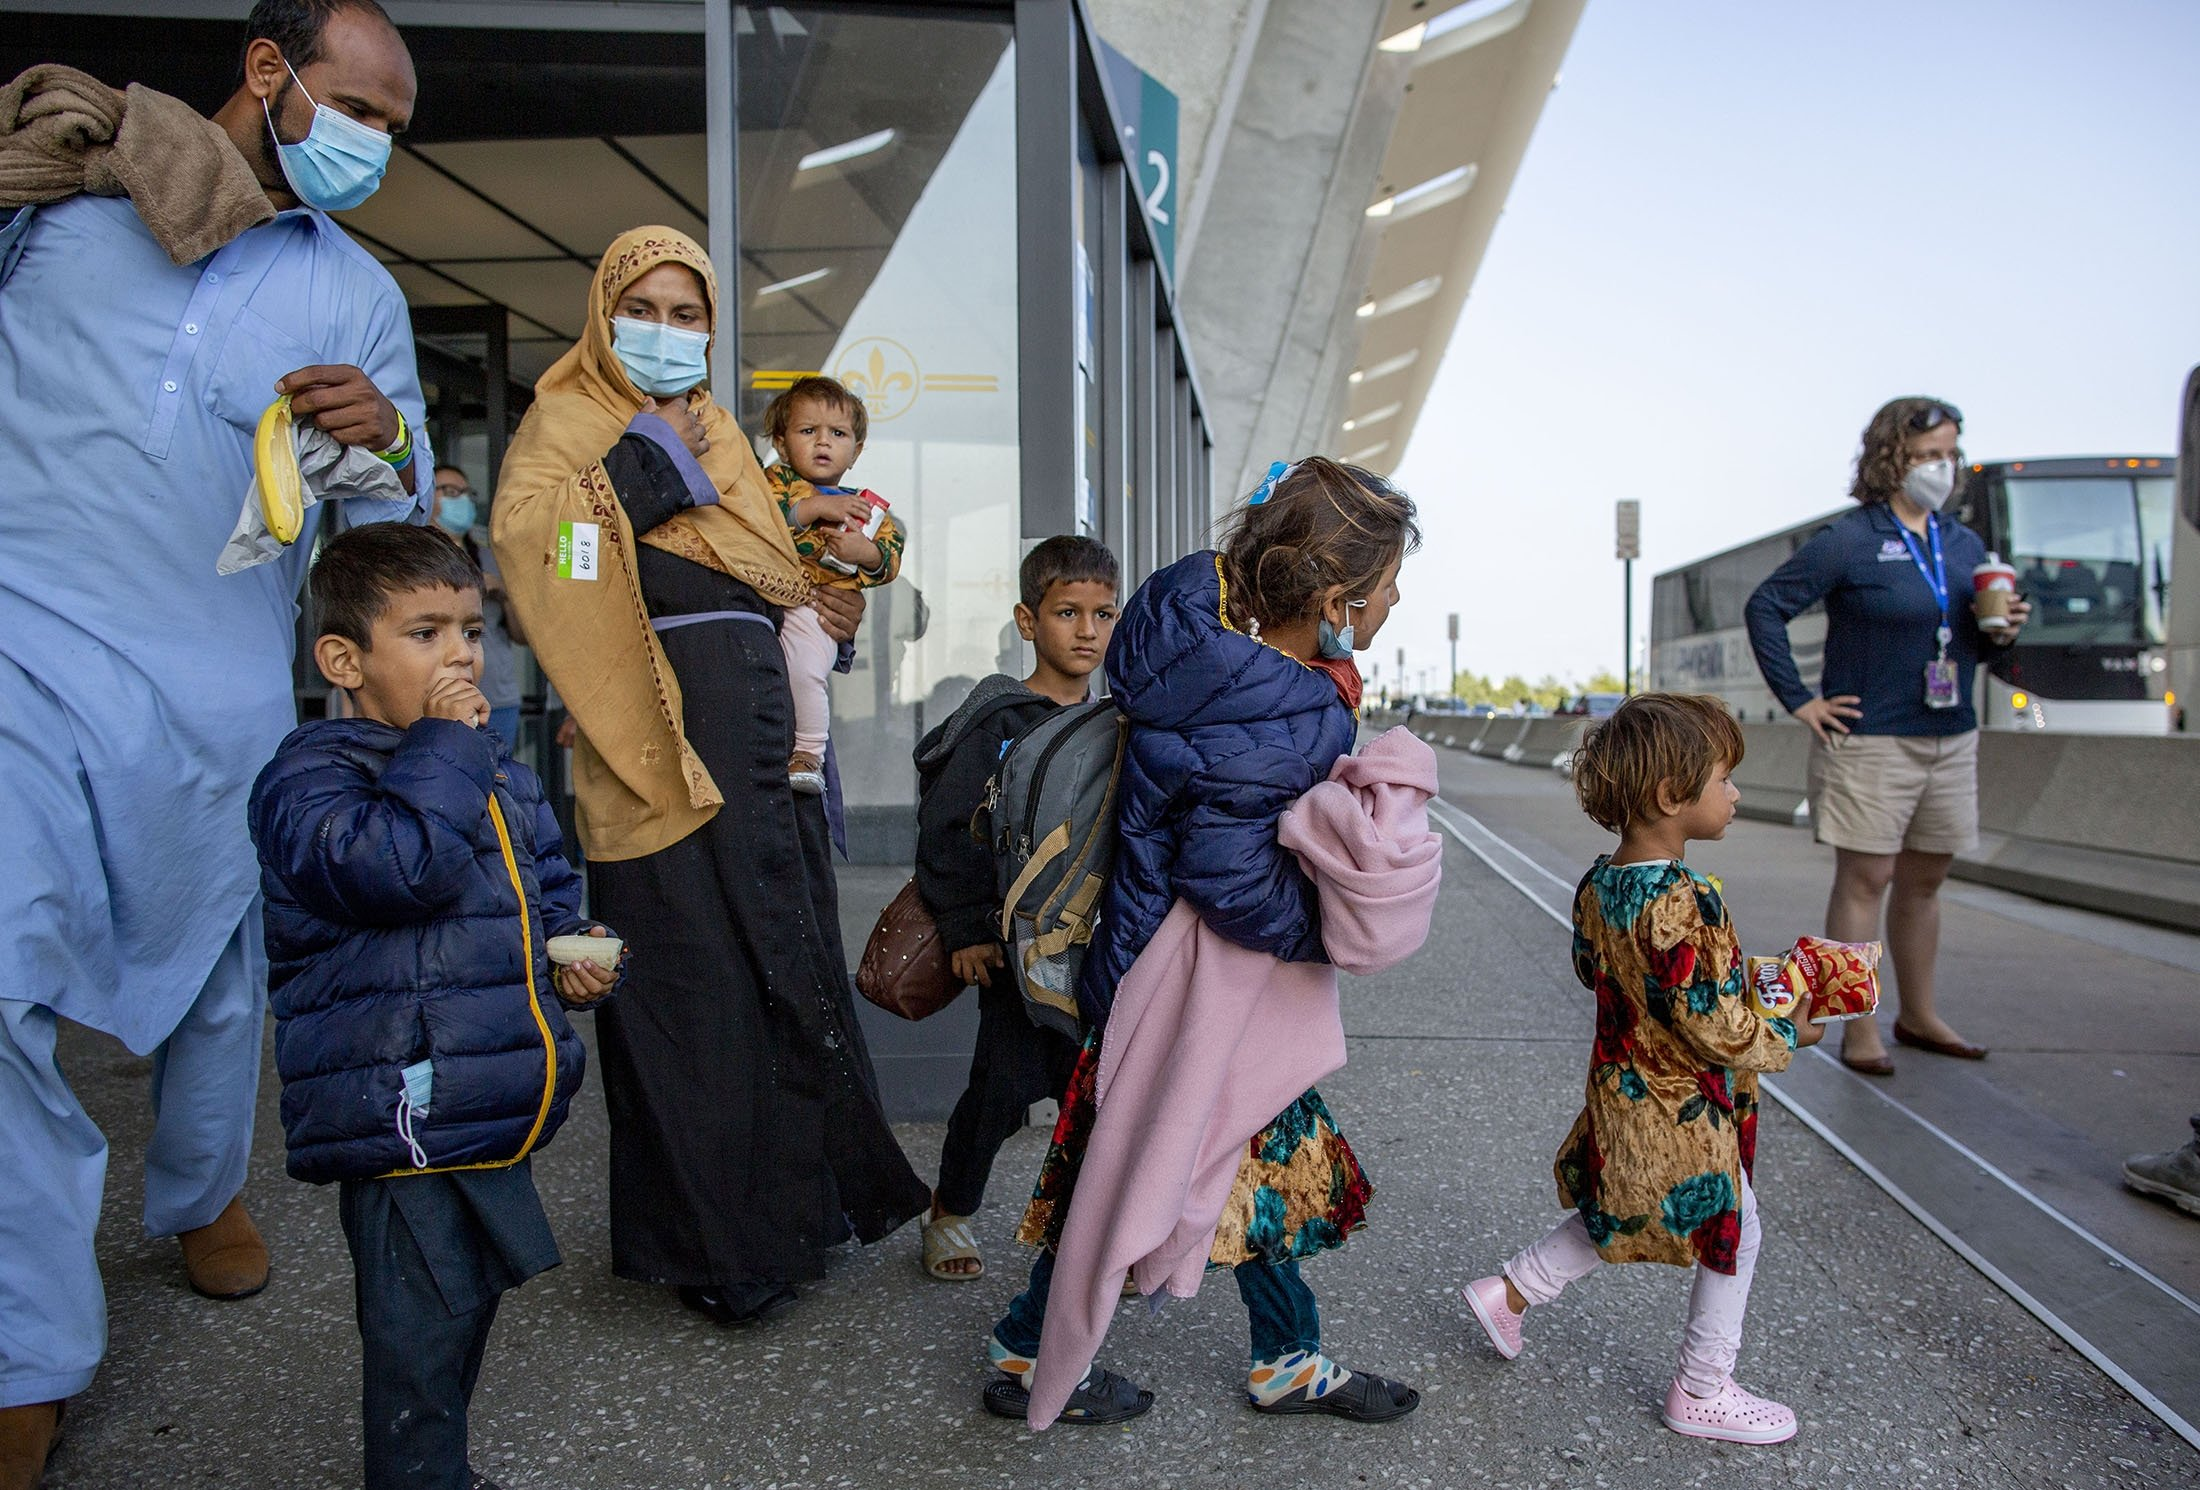 Families evacuated from Kabul, Afghanistan, walk to board a bus after they arrived at Washington Dulles International Airport, in Chantilly, Virginia, U.S., Aug. 28, 2021. (AP Photo)